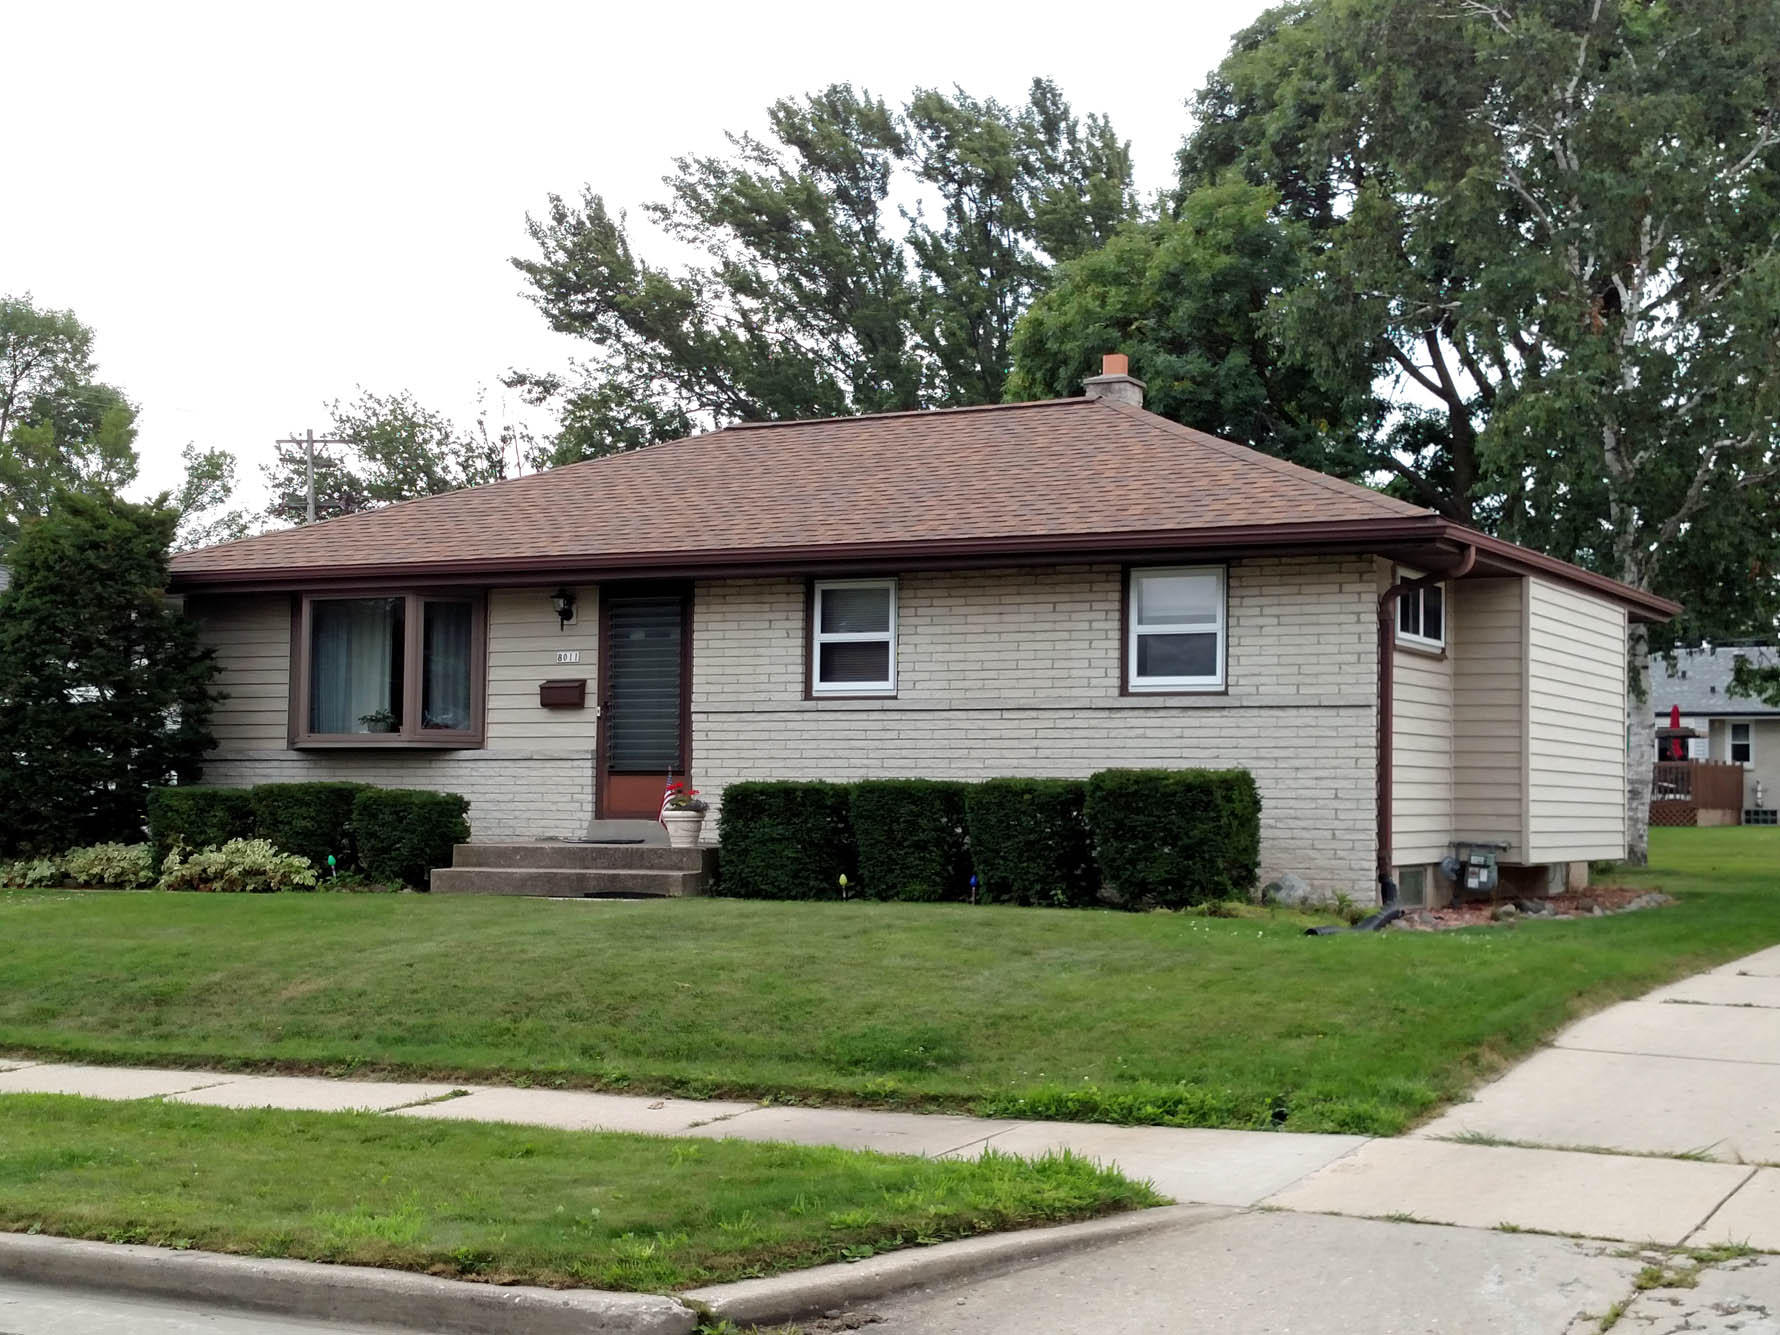 Phenomenal 8011 W Tesch Ave Milwaukee Wi 53220 Mls 1655662 Coldwell Banker Beutiful Home Inspiration Cosmmahrainfo